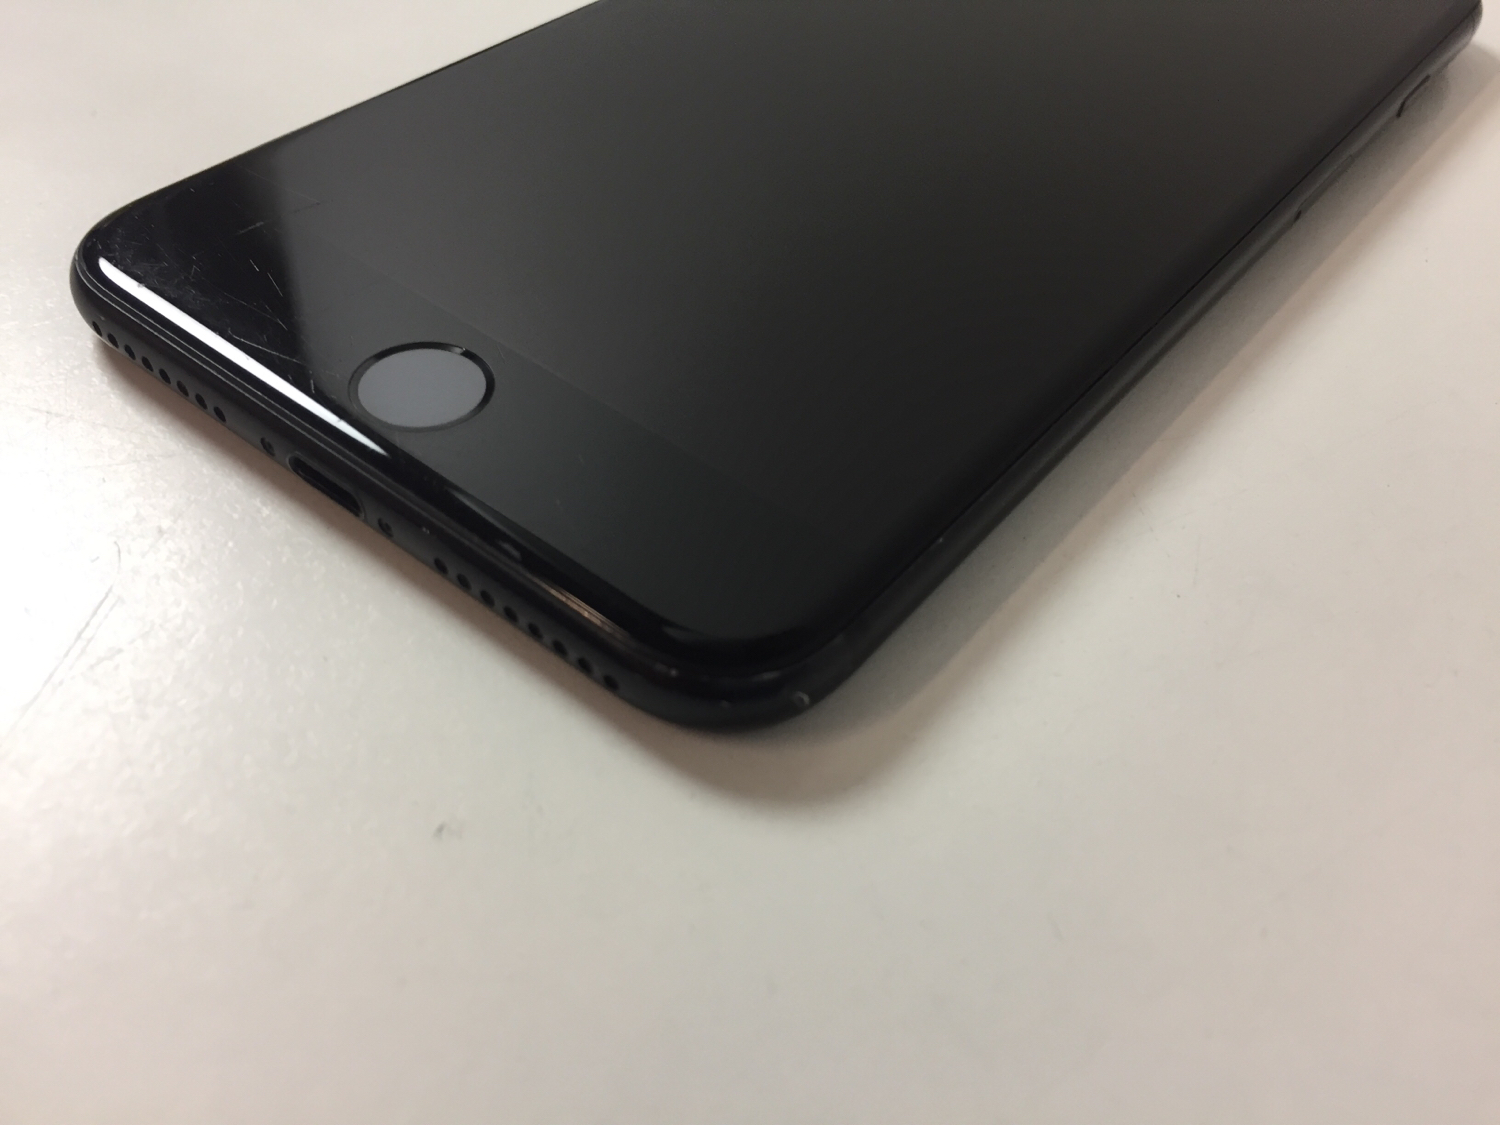 iPhone 7 Plus 32GB, 32 GB, Musta, Kuva 4